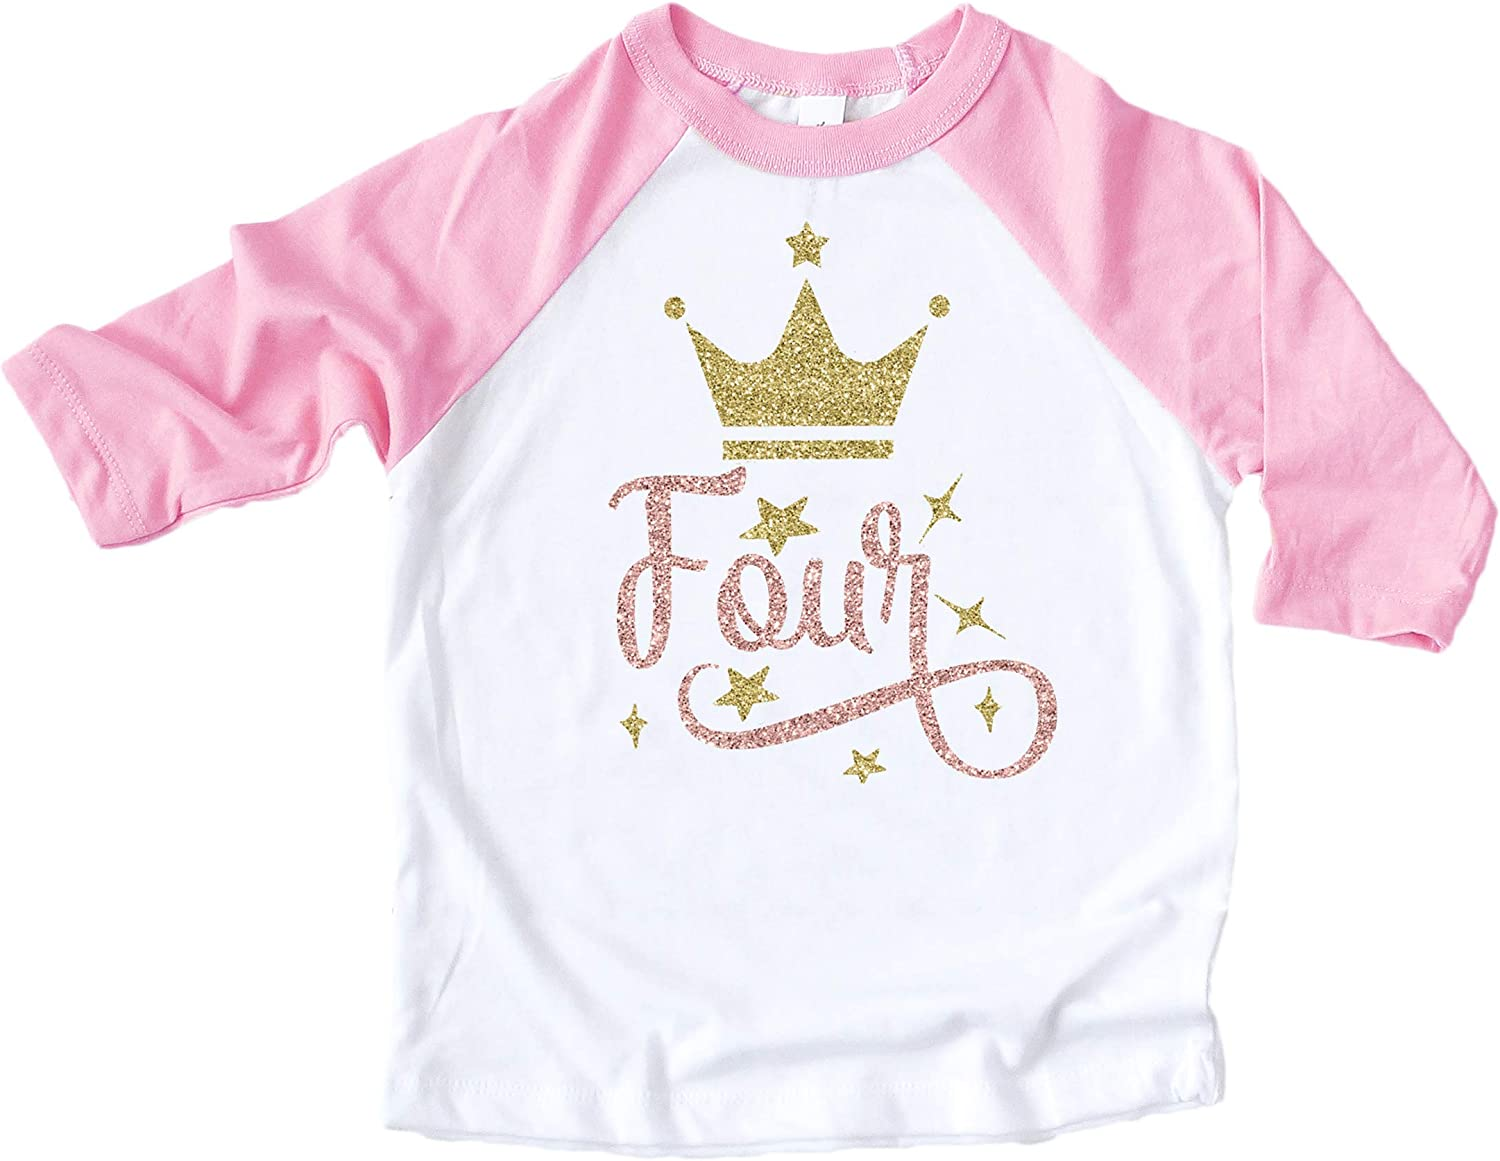 Olive Loves Apple Girls 4th Birthday Shirt Four Crown Princess Glitter Gold 4th Birthday Outfit